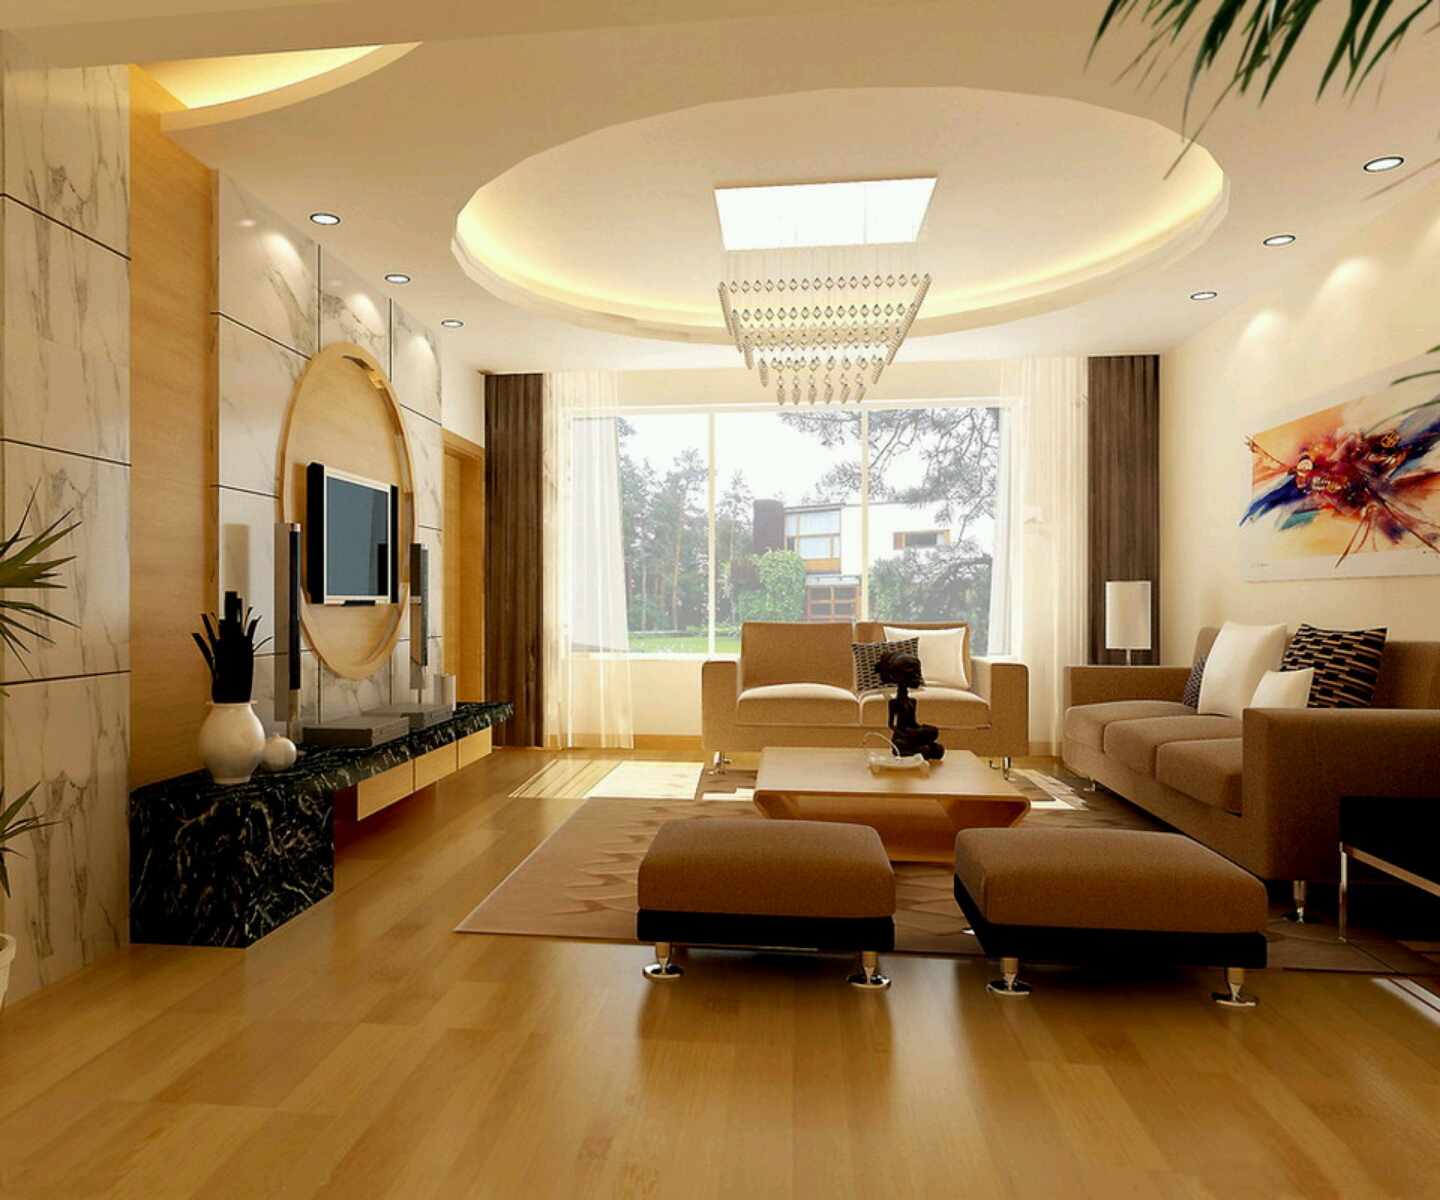 Modern interior decoration living rooms ceiling designs for New home interior ideas